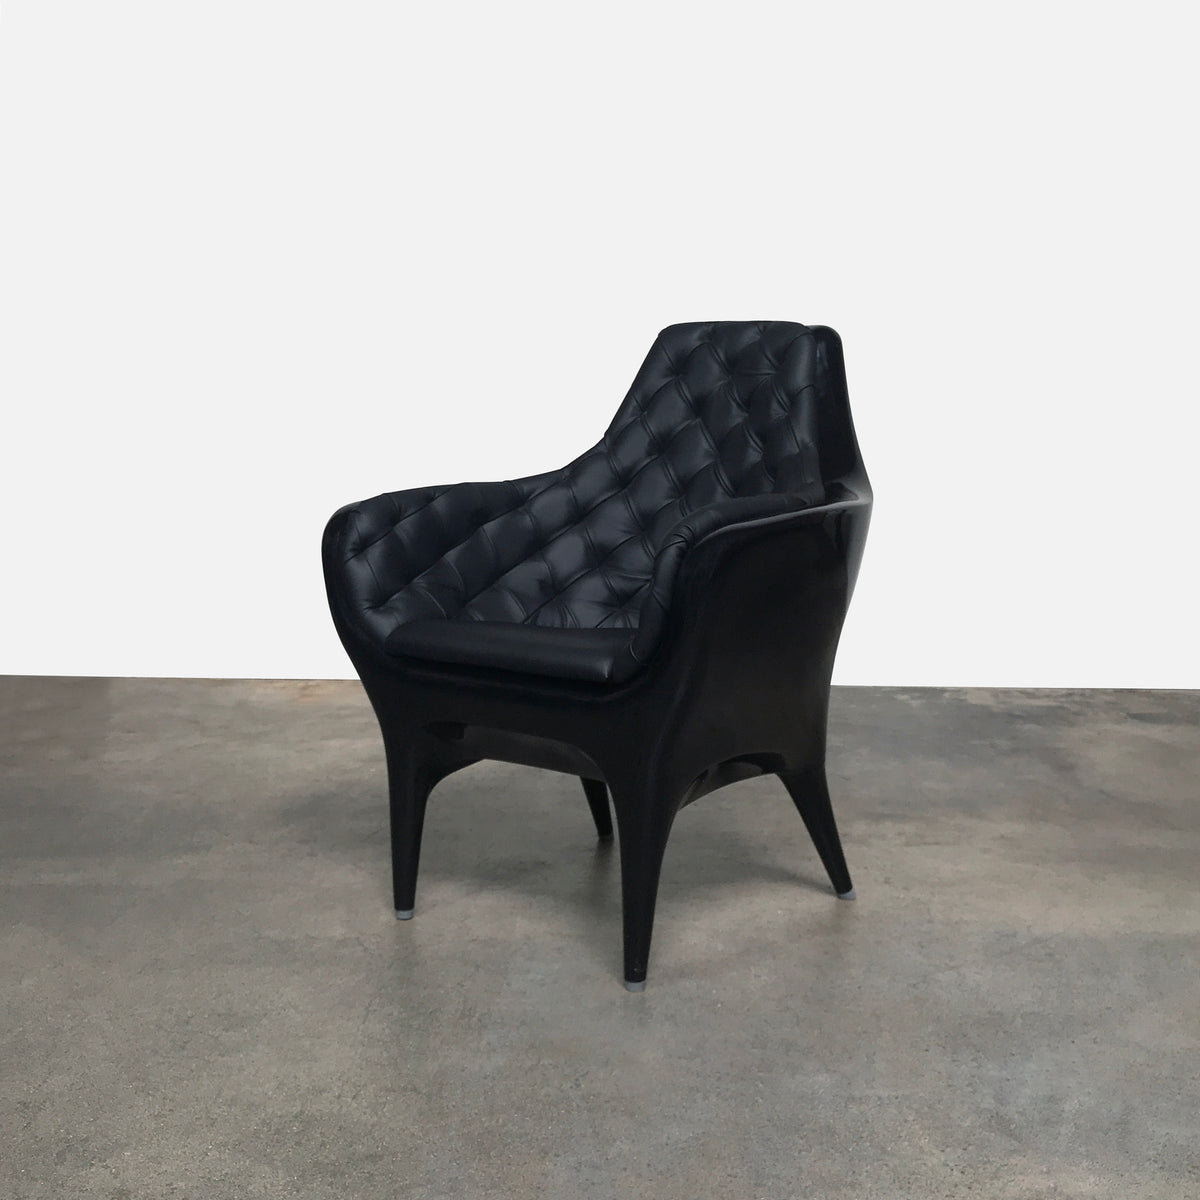 BD Barcelona Black Leather Showtime Armchair by Jaime Hayon